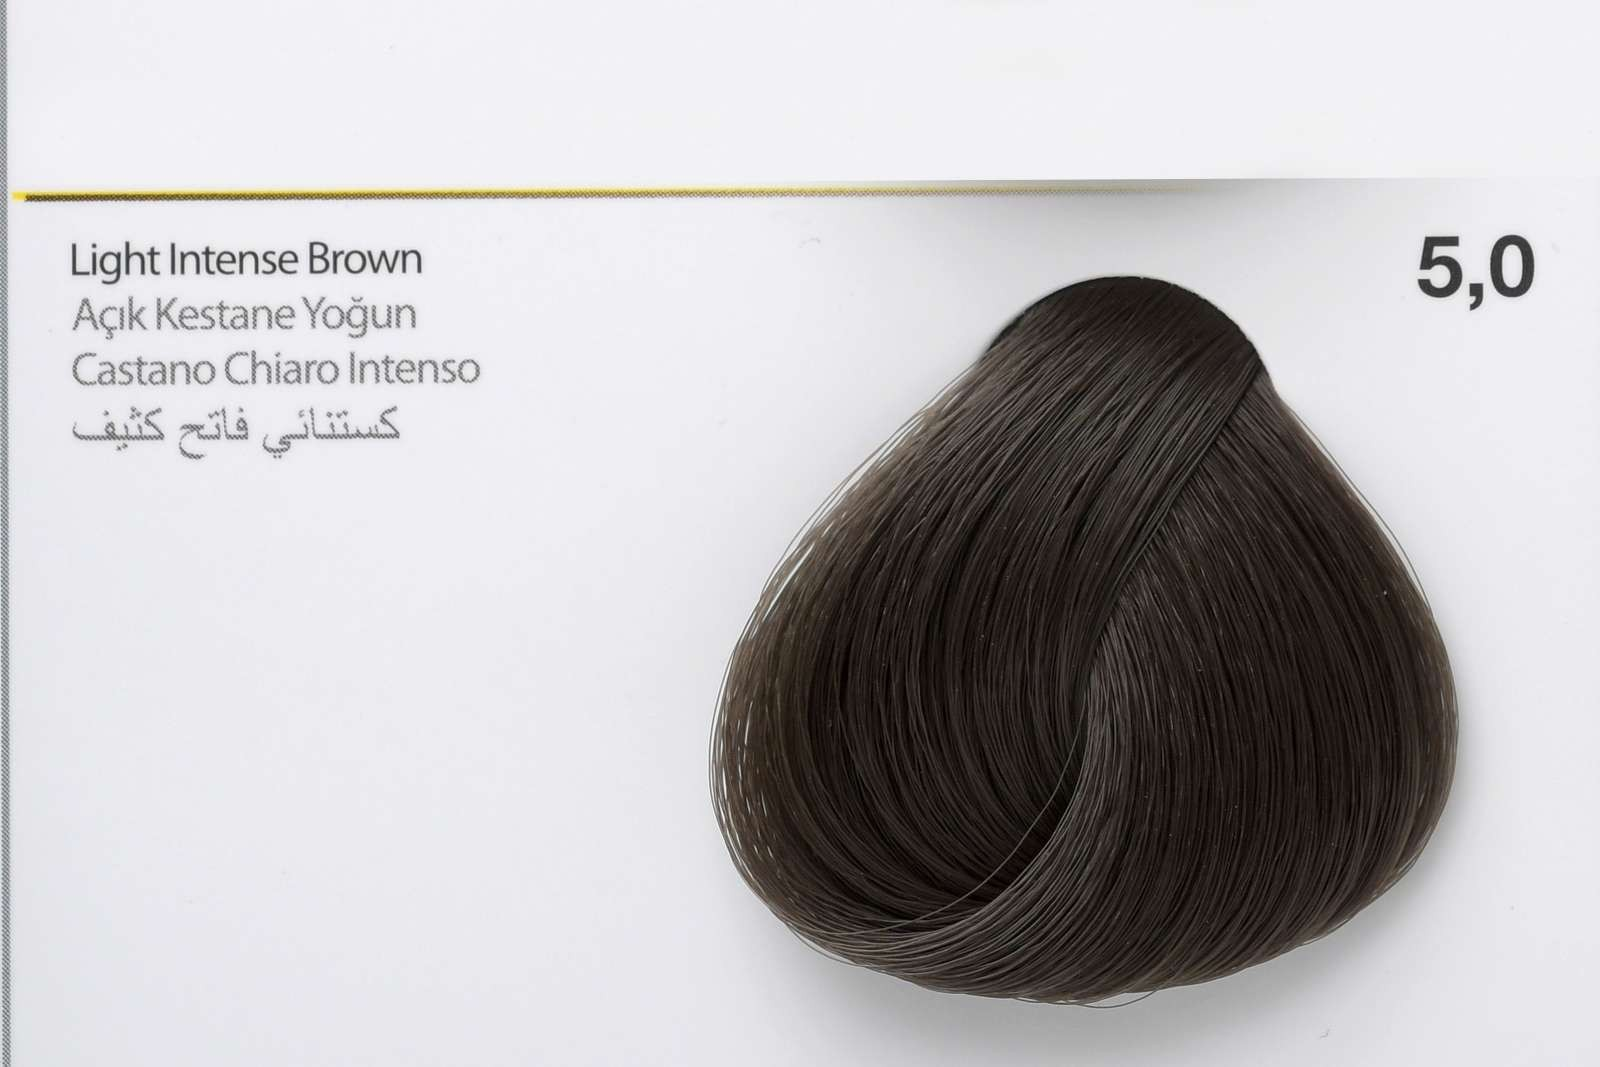 5,0 - Light Intense Brown-swatch